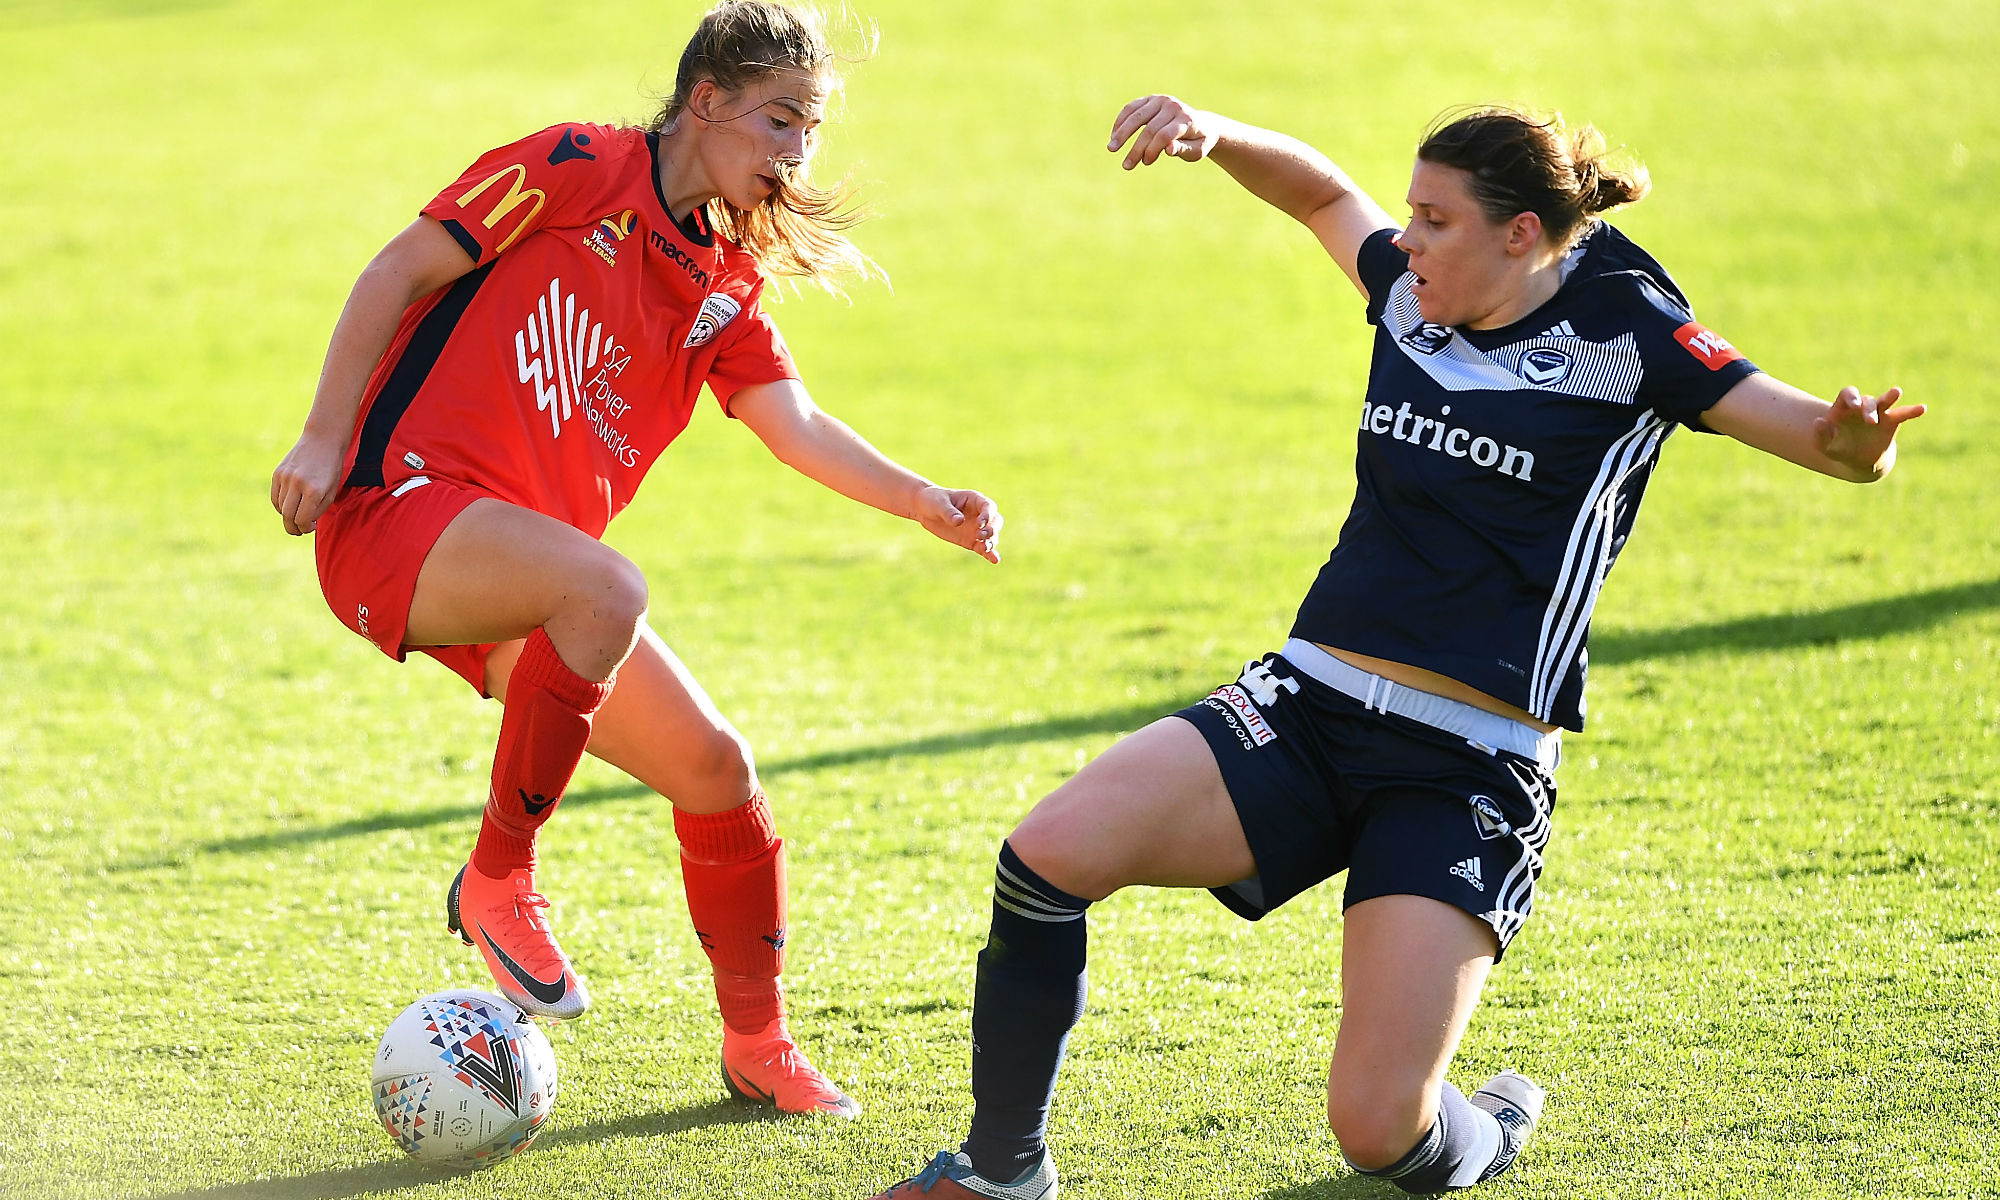 Adelaide's Emily Hodgson takes Melbourne Victory's Melina Ayres in the Westfield W-League's version of the Original Derby.